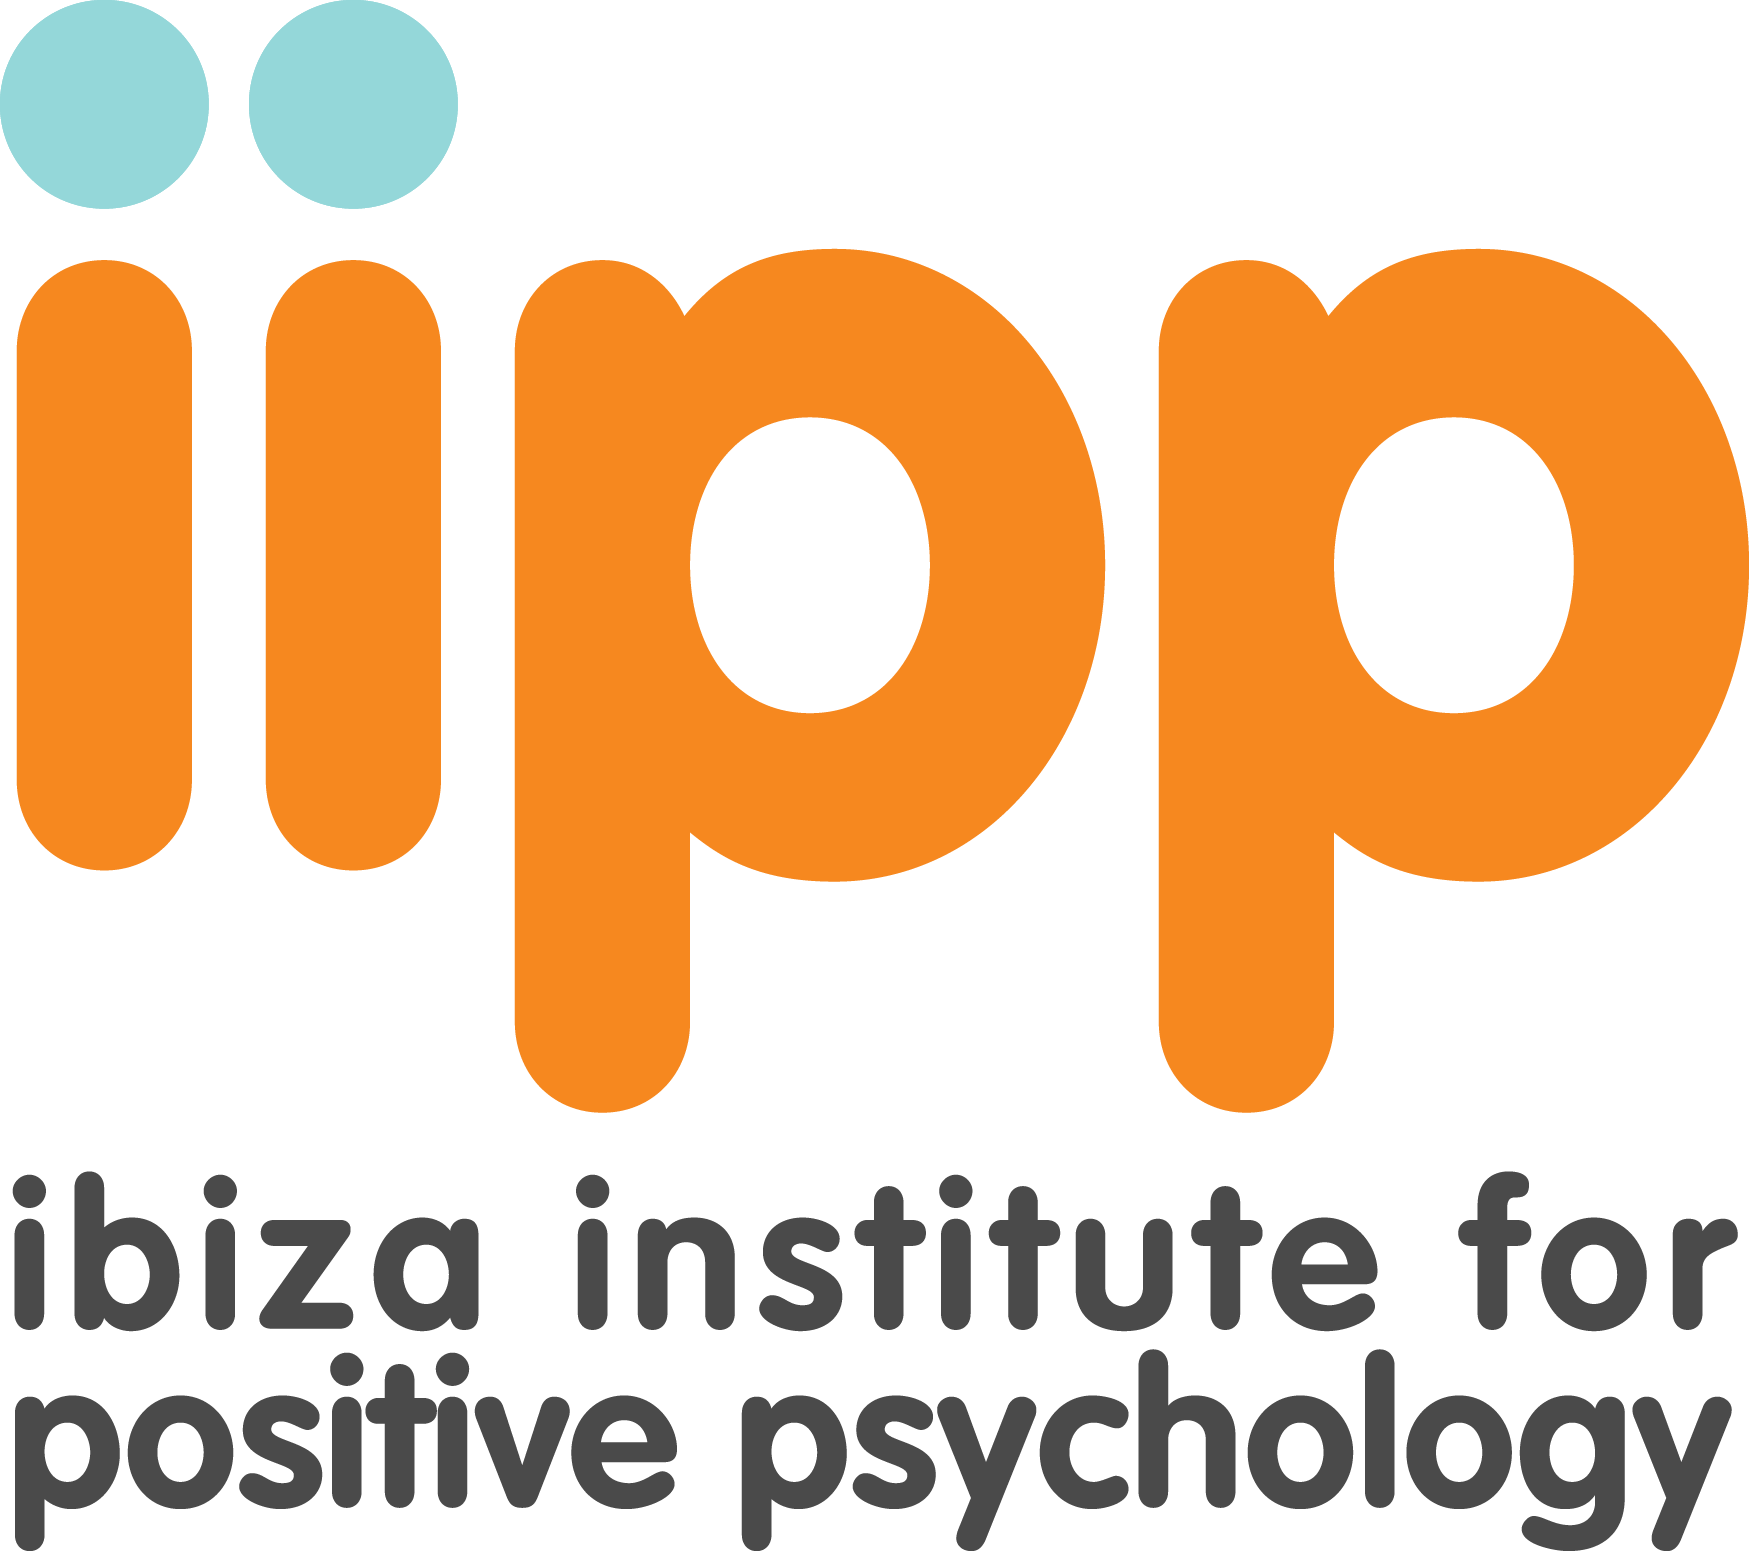 iipp_logo_outlined_CMYK_2 2.png